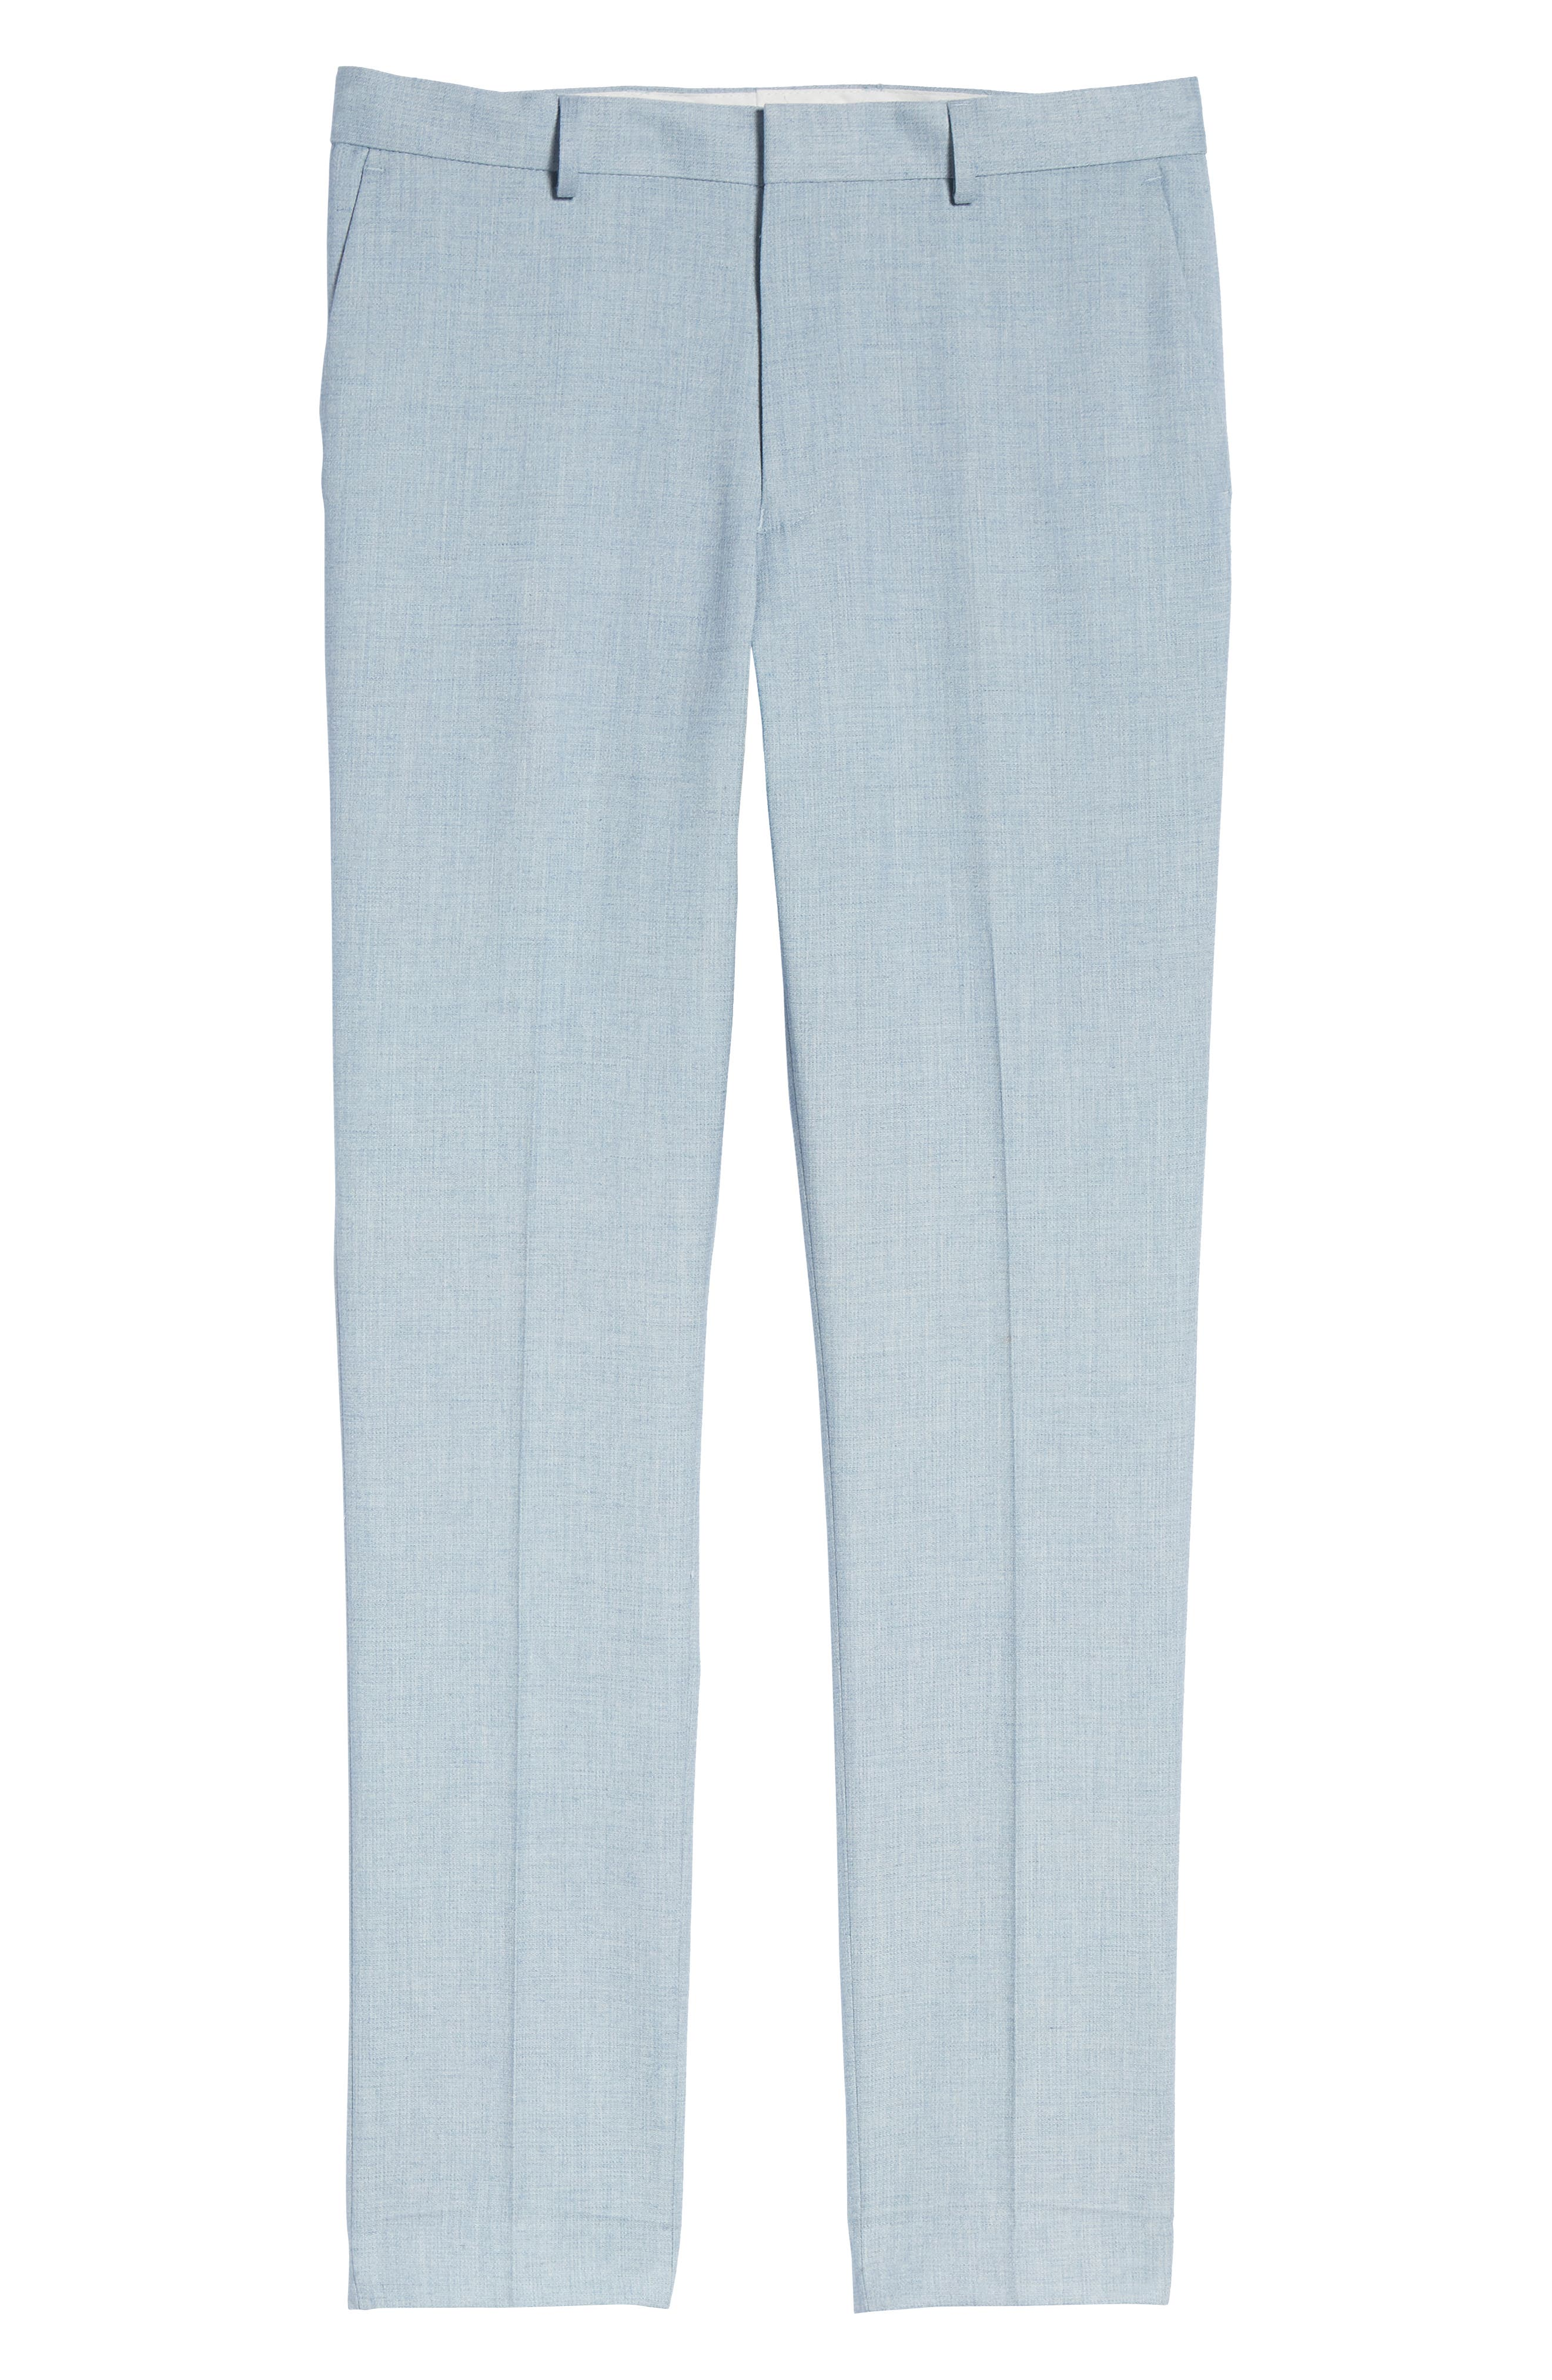 Stretch Skinny Fit Suit Trousers,                             Alternate thumbnail 6, color,                             BLUE